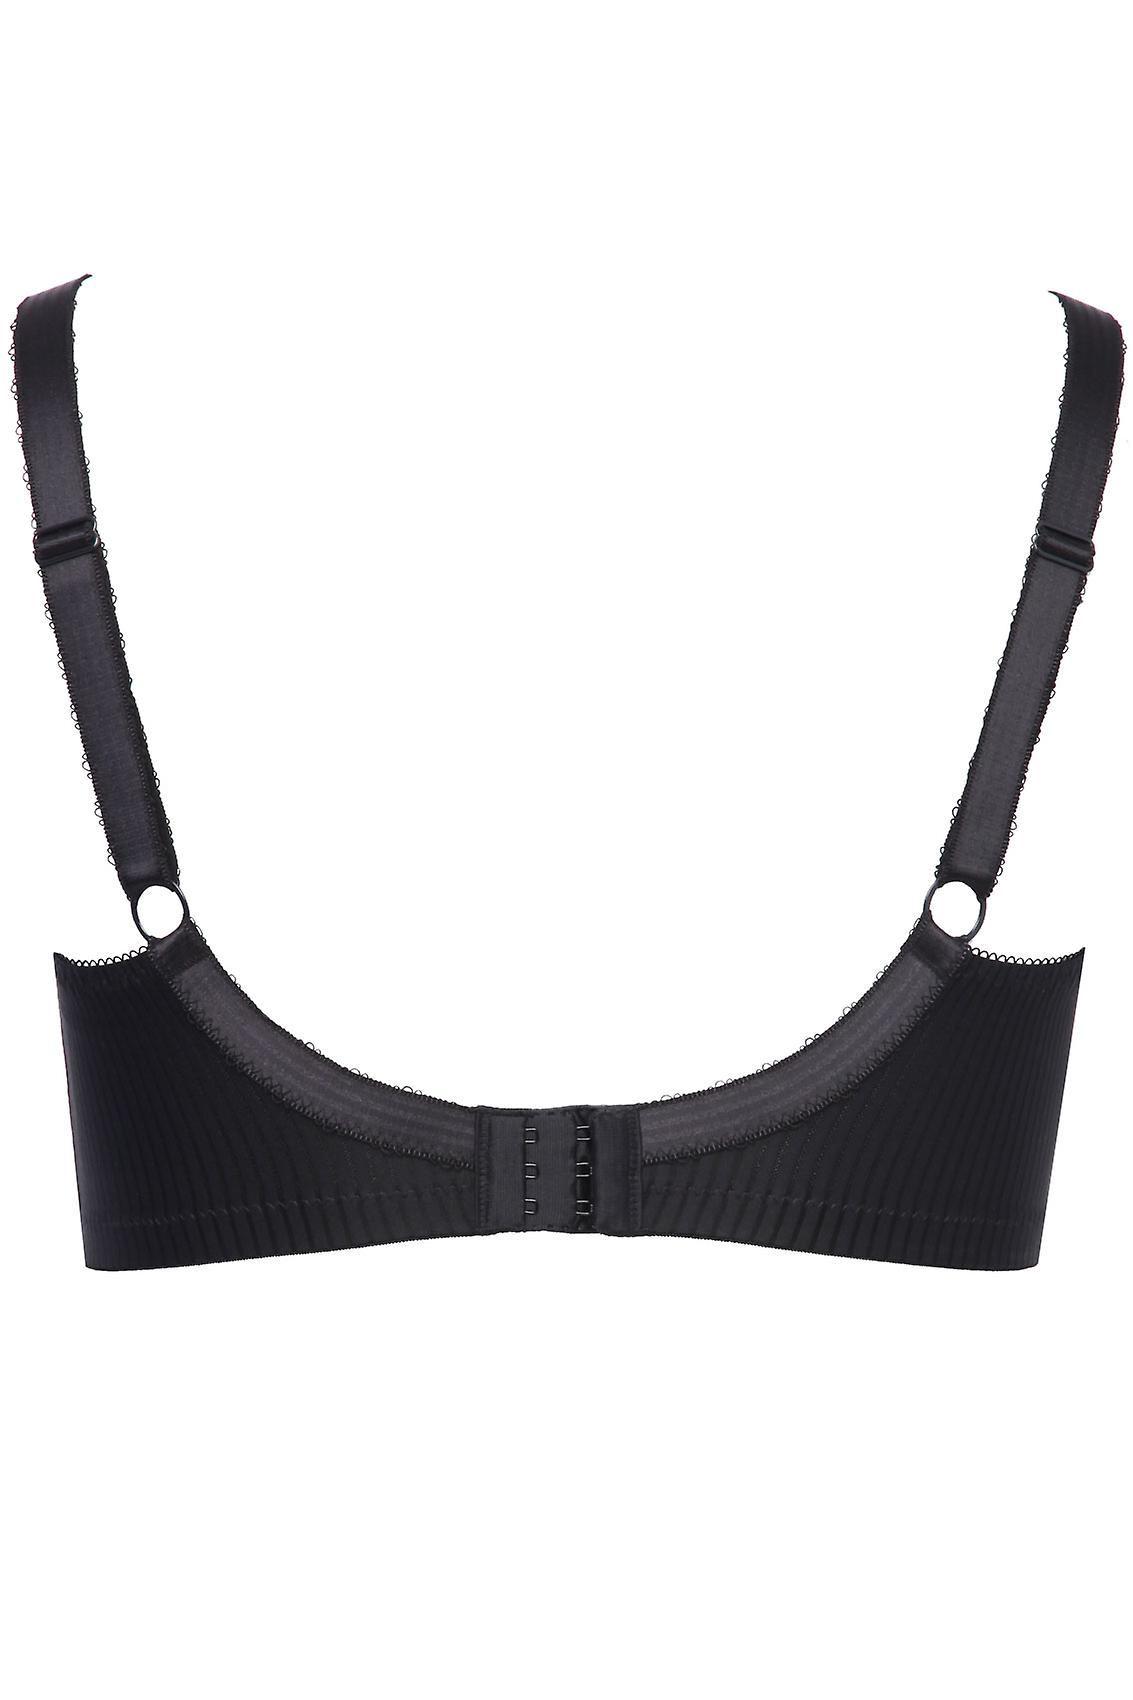 BESTFORM Black Modern Comfort Non-Wired Bra